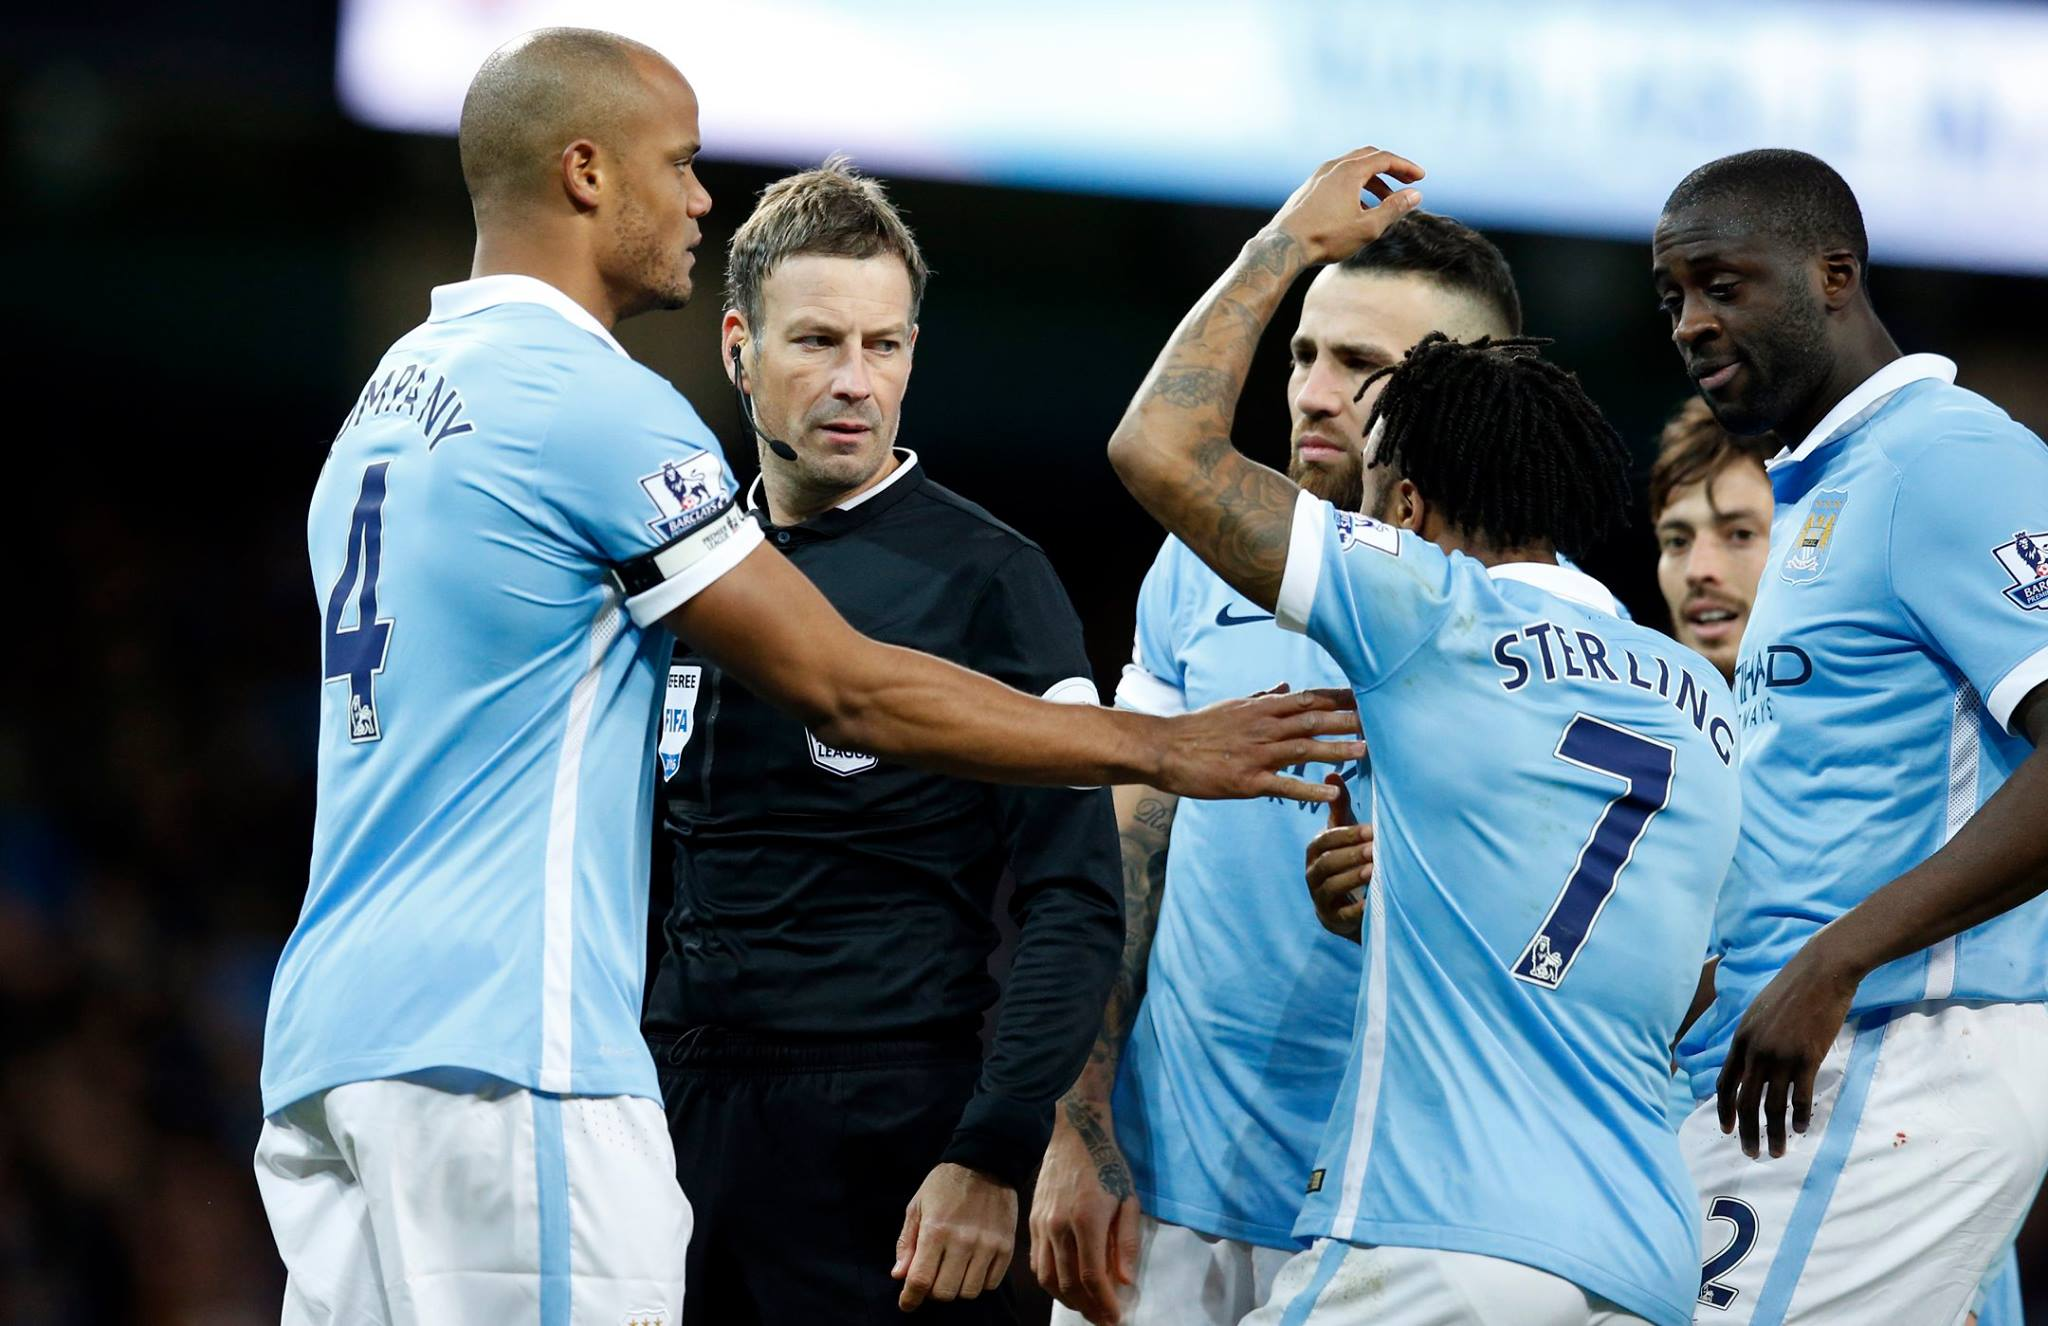 Never a penalty - Raheem Sterling protests his innocence to controversial Clattenburg to no avail.